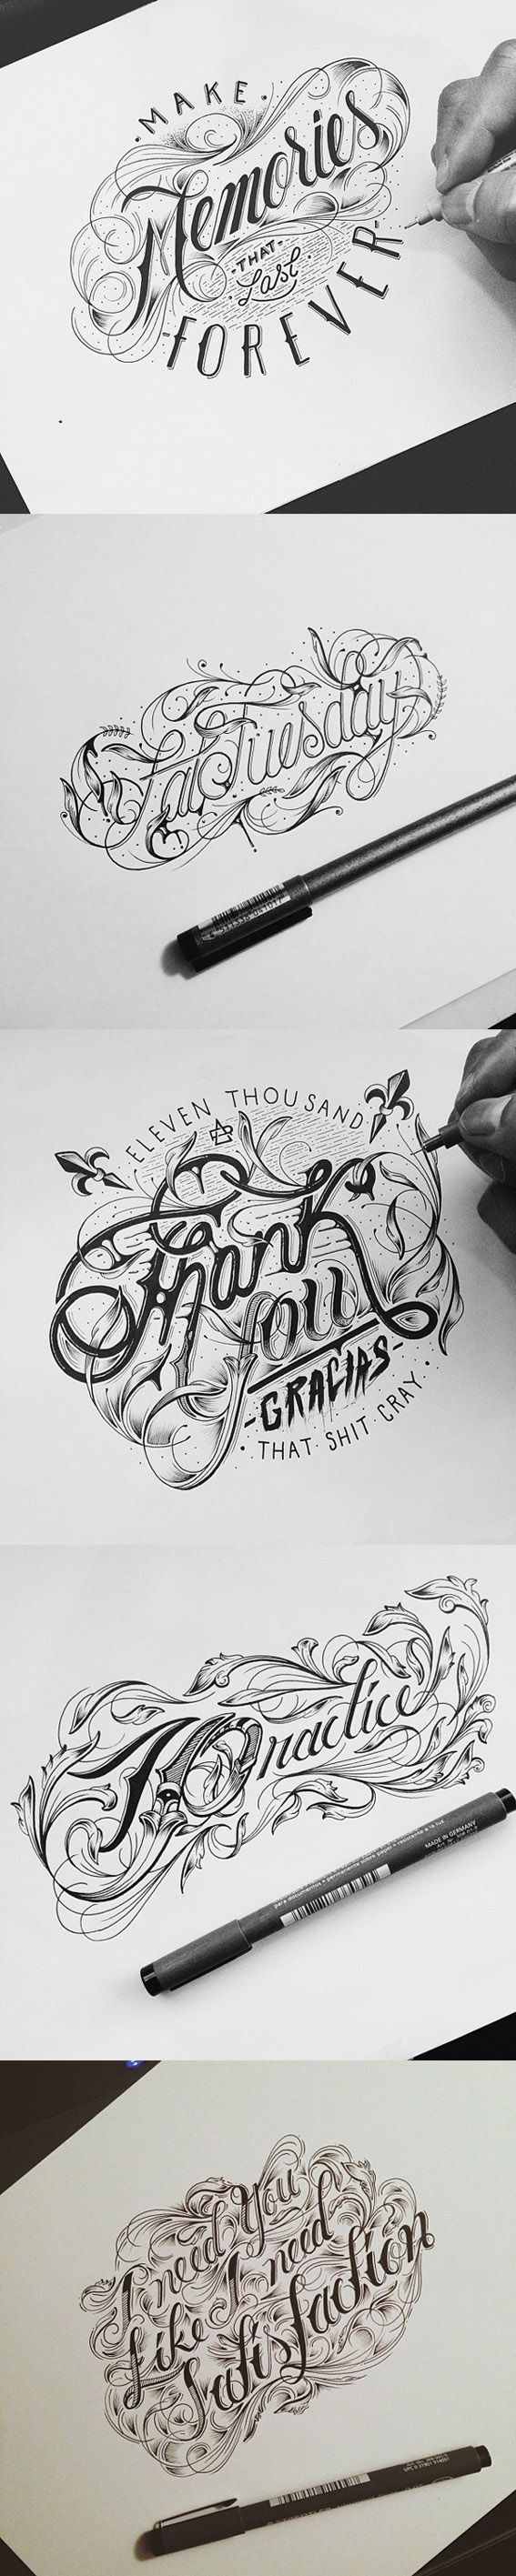 Hand lettering by Raul Alejandro